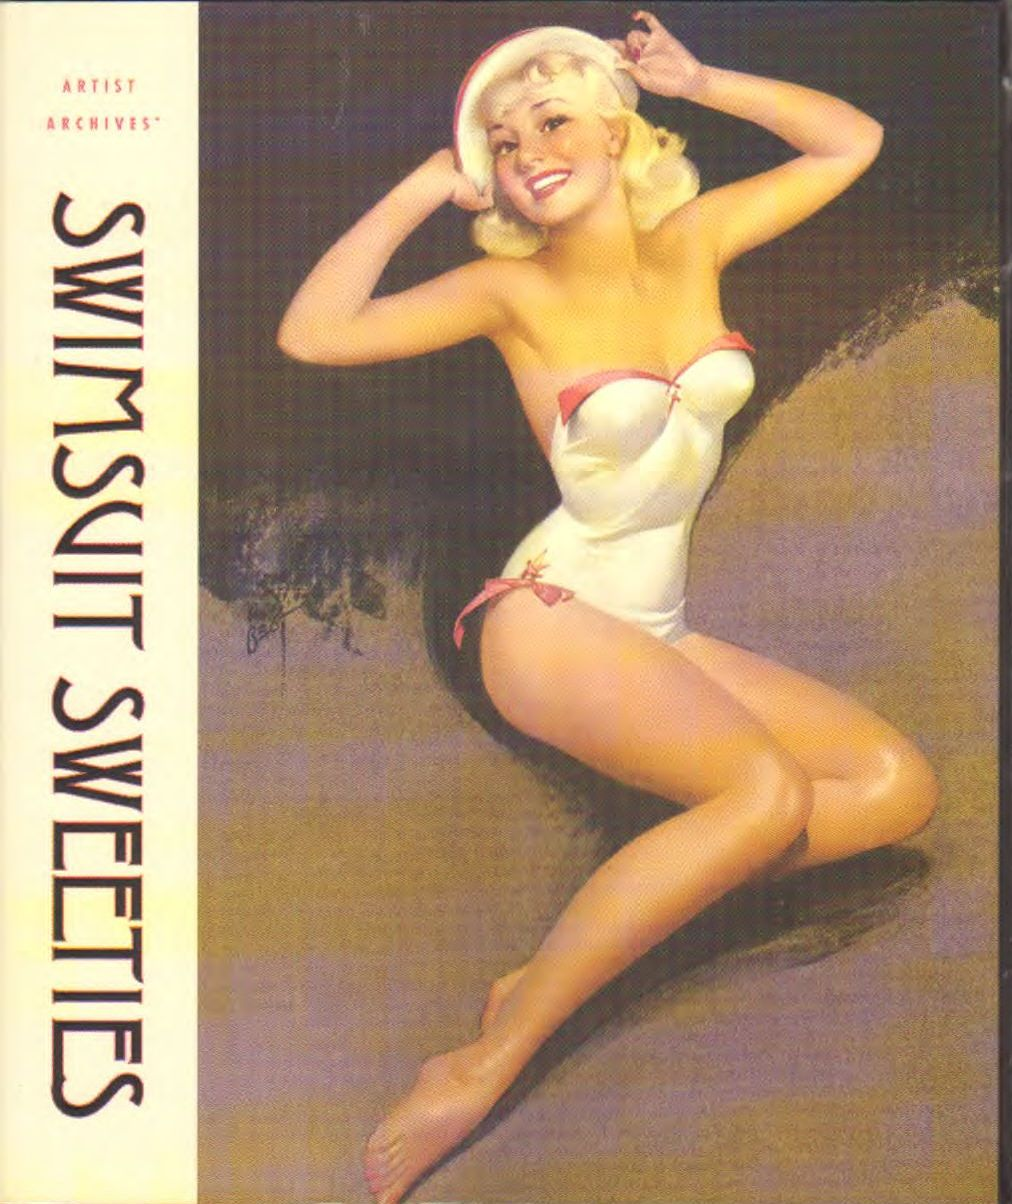 AA.VV - Artist Archives -  Swimsuit Sweeties